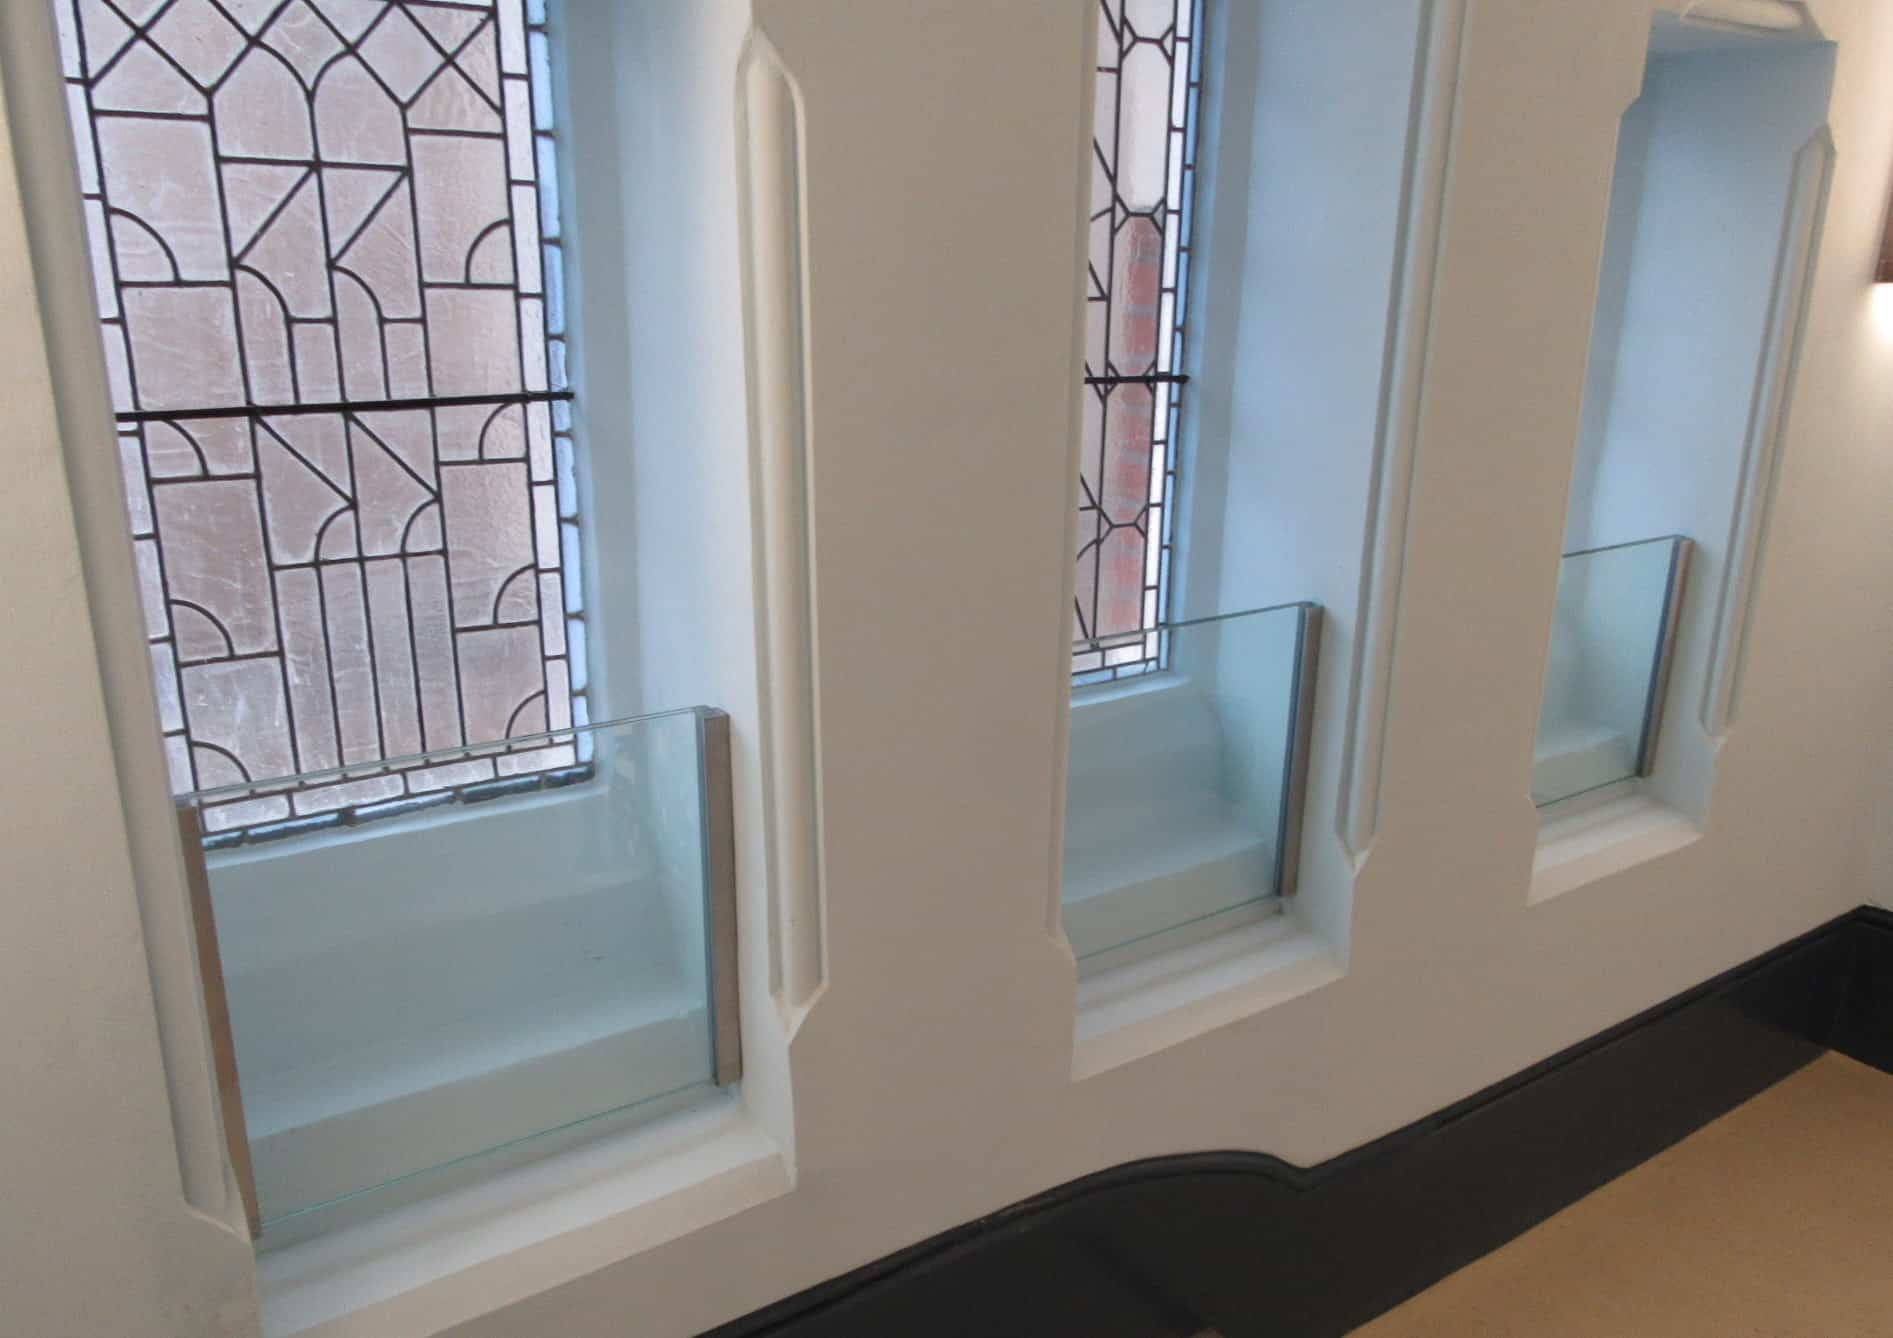 Protective Glazed Screens to Stained Glass